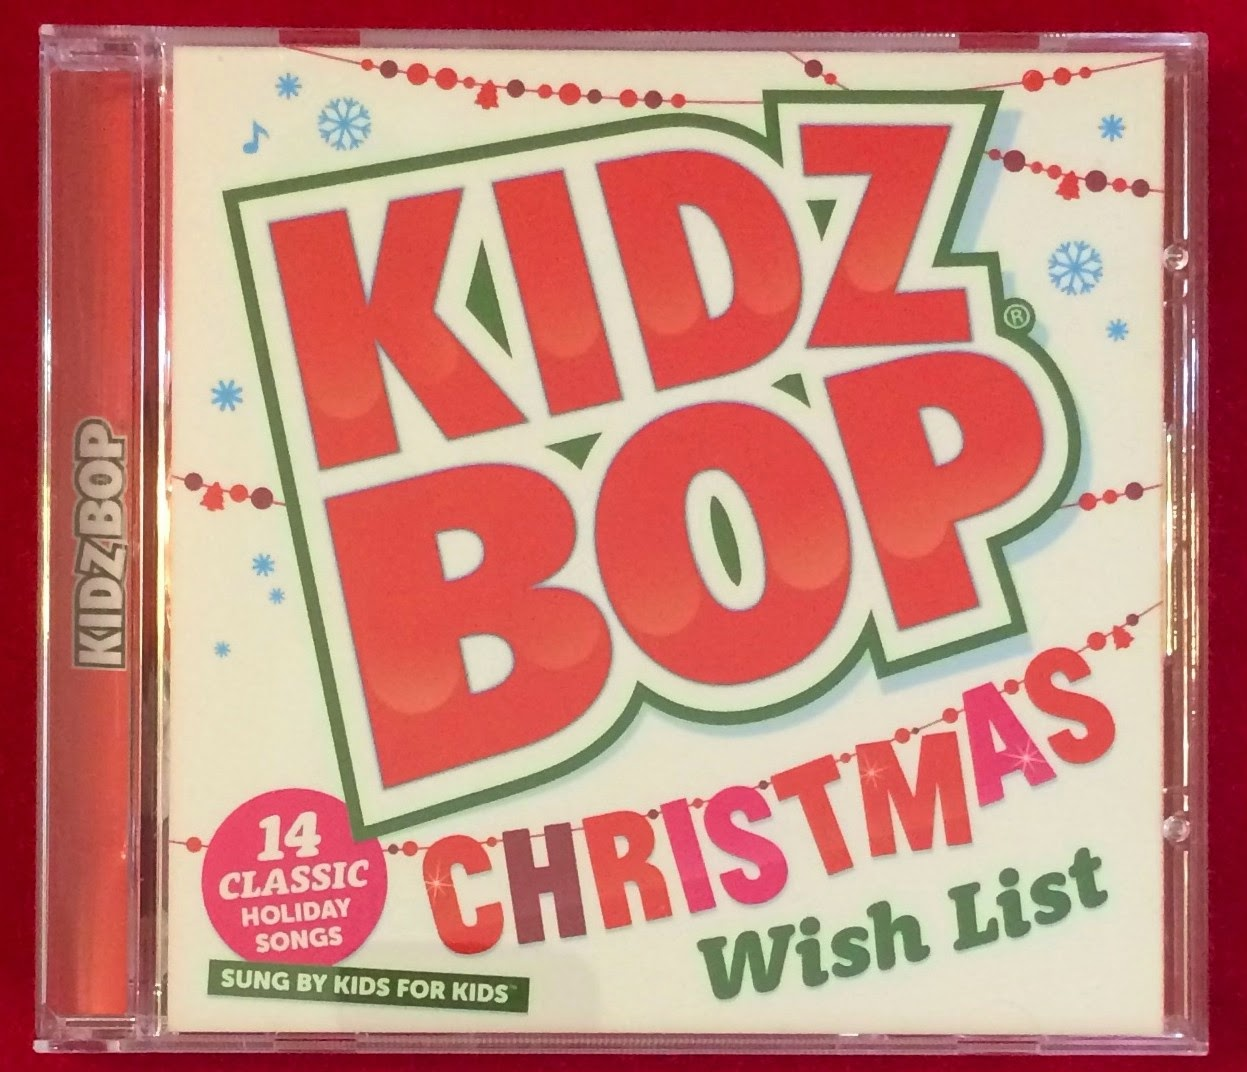 http://stacytilton.blogspot.com/2014/11/holiday-gift-guide-kidz-bop-for.html